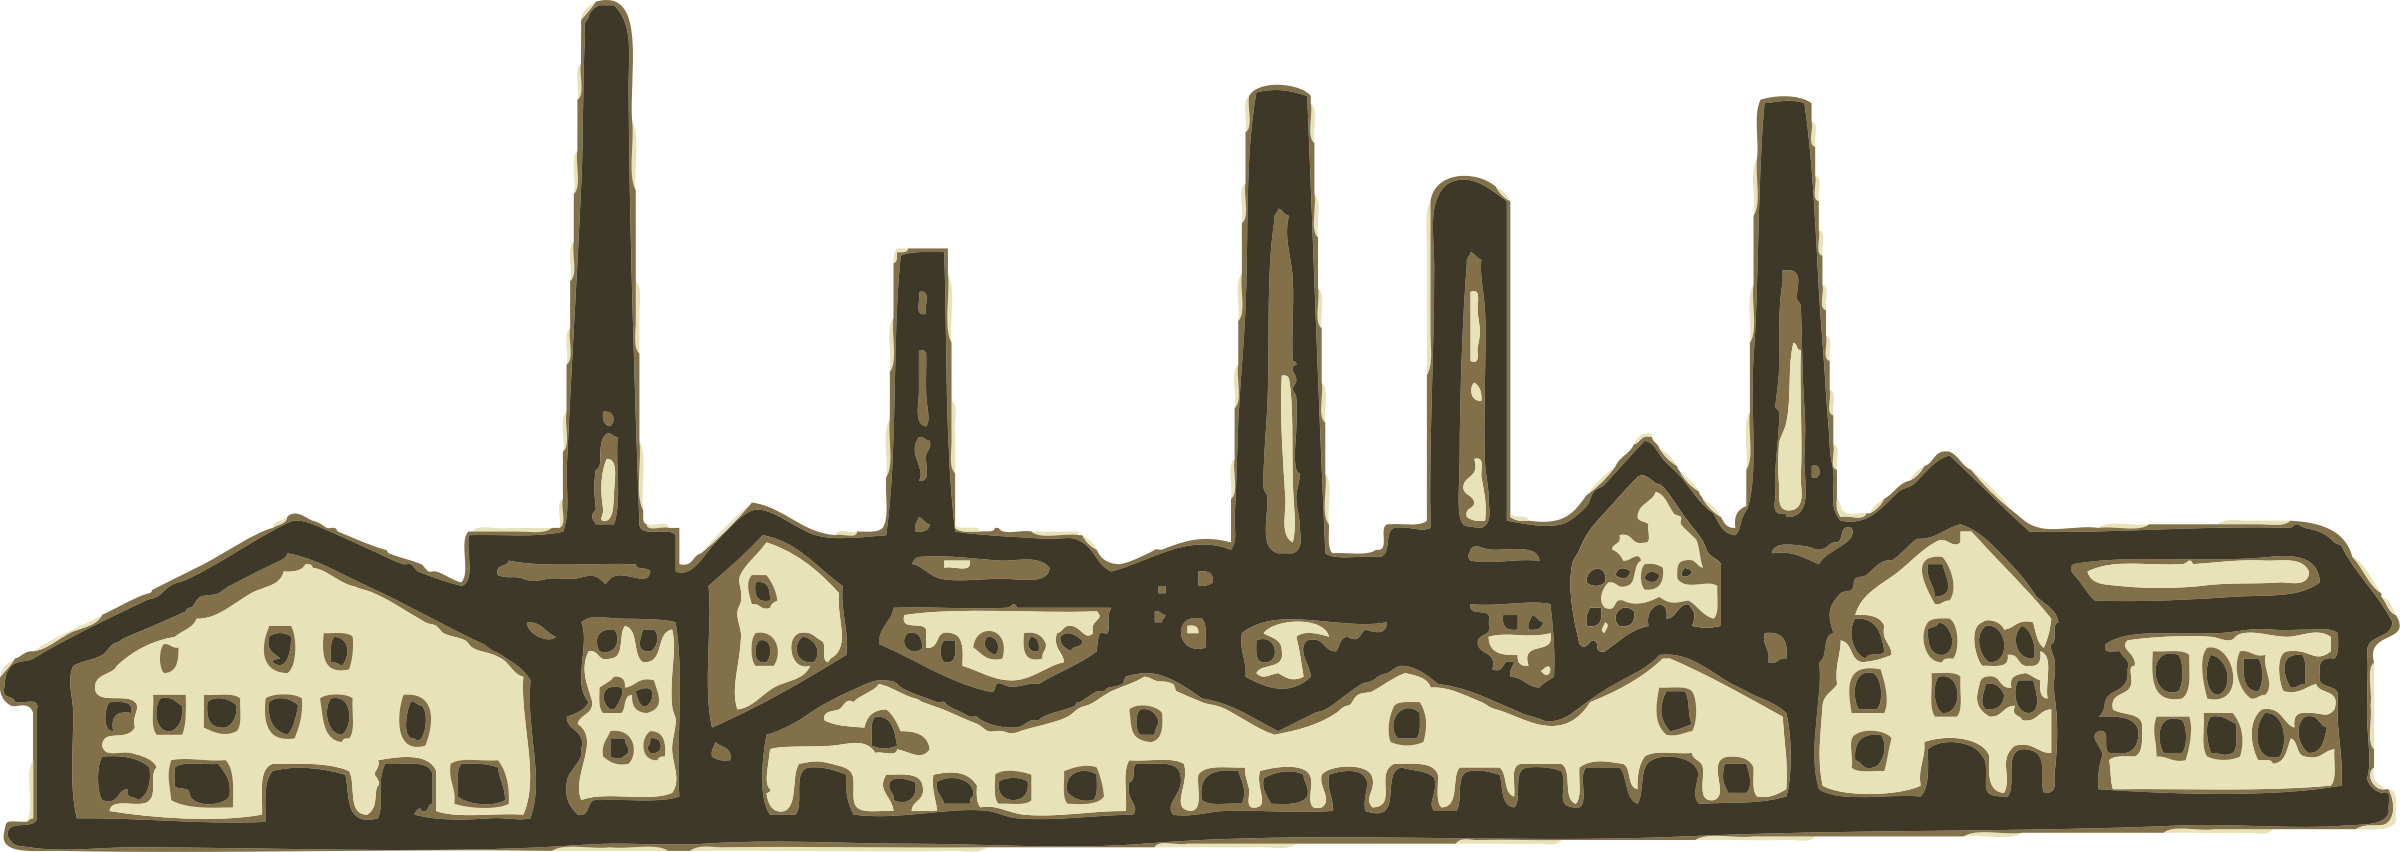 Factory clipart industrial revolution. Old big image png